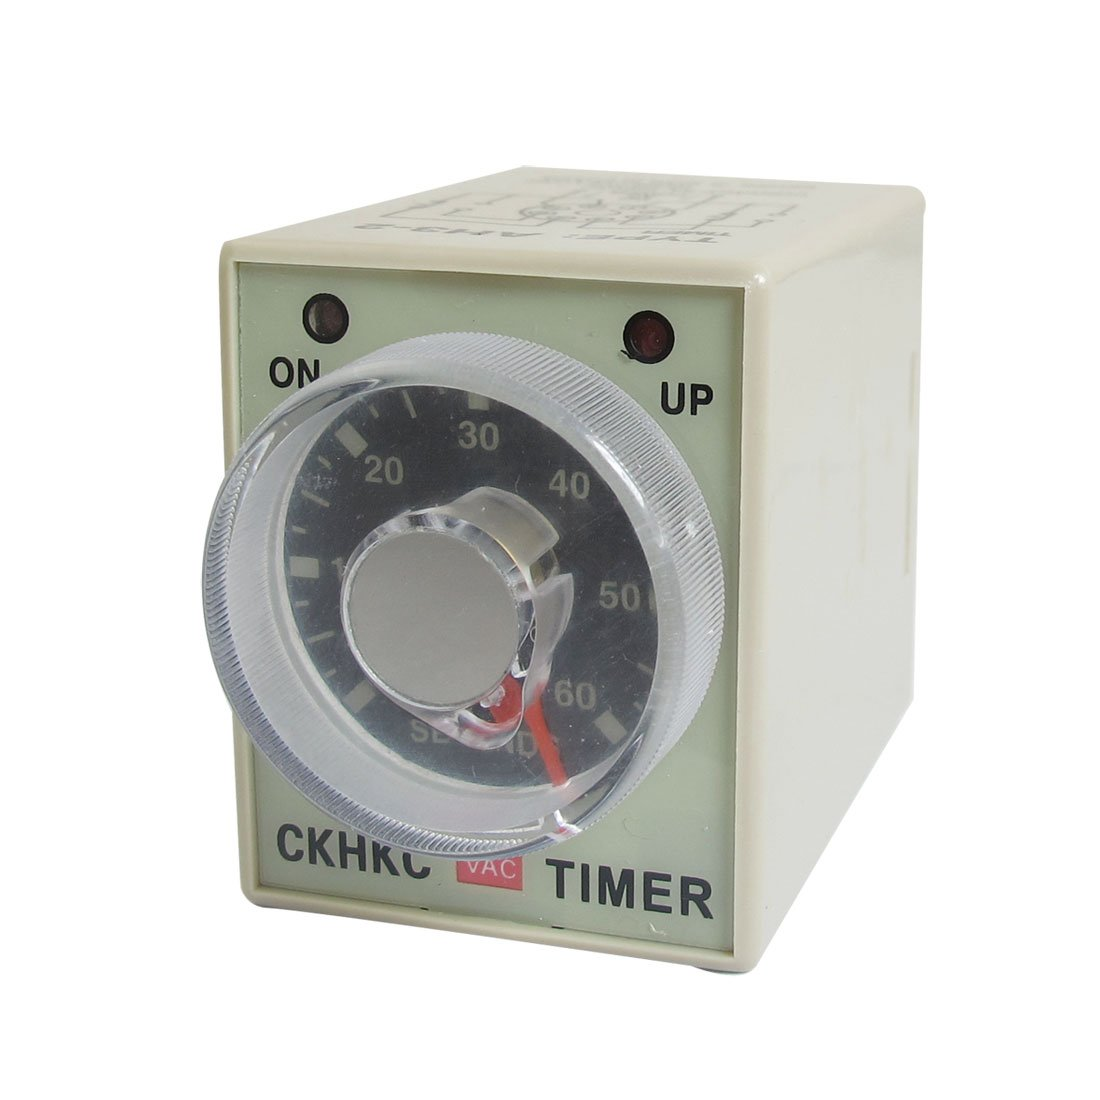 Ac 220v 0 60 Seconds 60s Timer Power On Delay Time Relay 8 Pin Ah3 2 Digital Stopwatch 060sec Circuit Car Motorbike